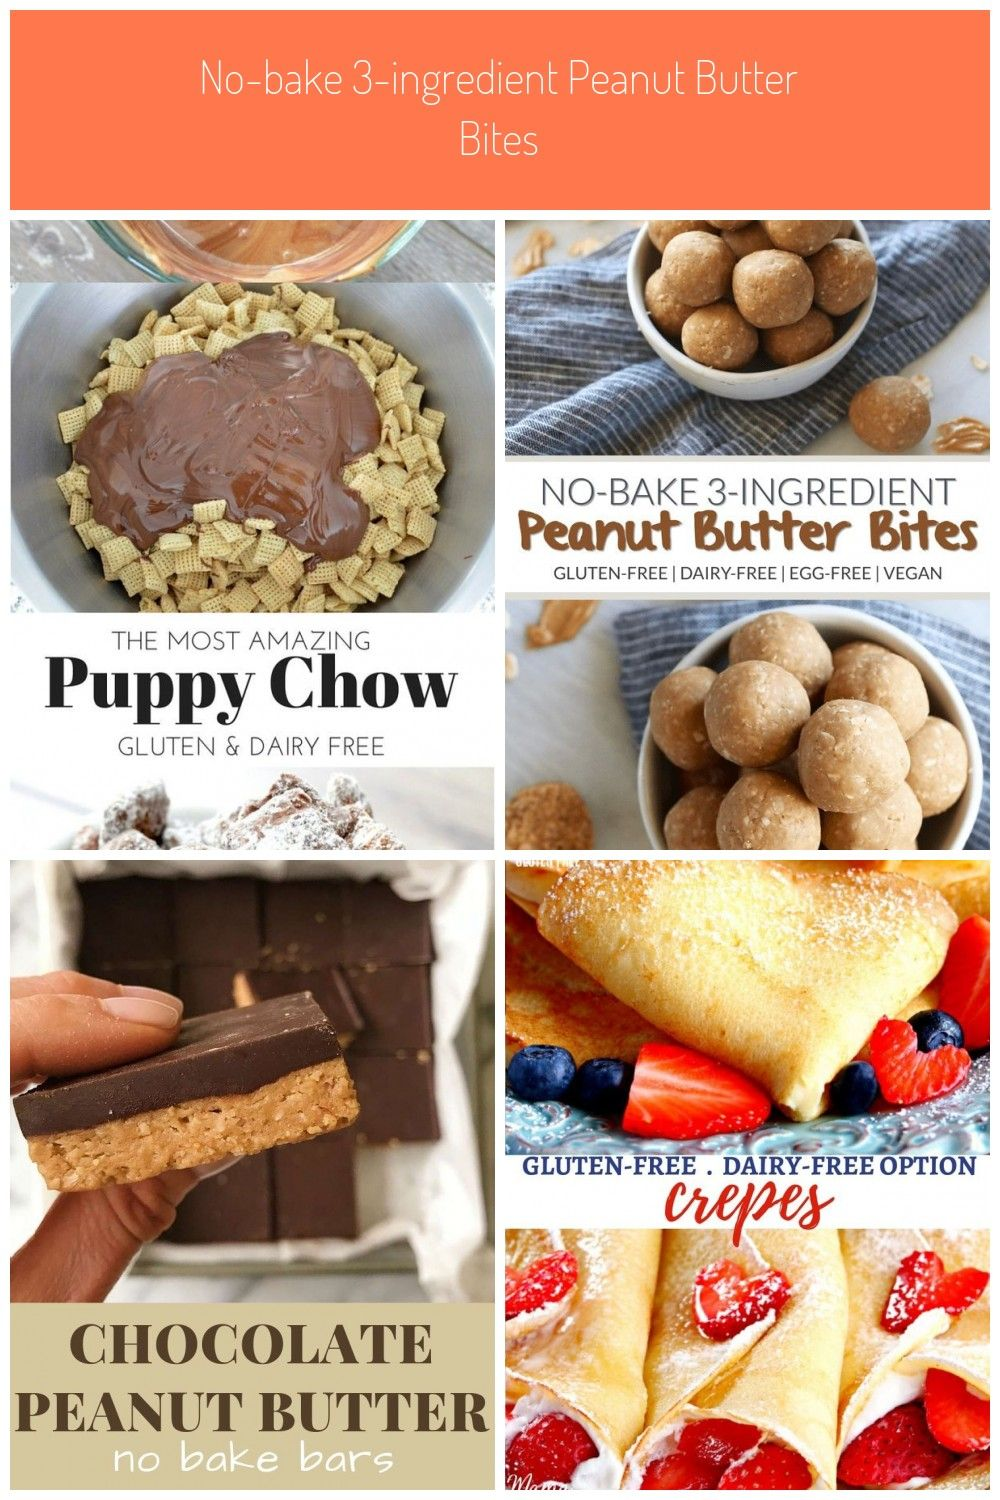 The Best Puppy Chow Recipe In The Universe Clumps Of Chocolate Peanut Butter Goodness Held Together In 2020 With Images Best Puppy Chow Recipe Peanut Butter No Bake Puppy Chow Recipes